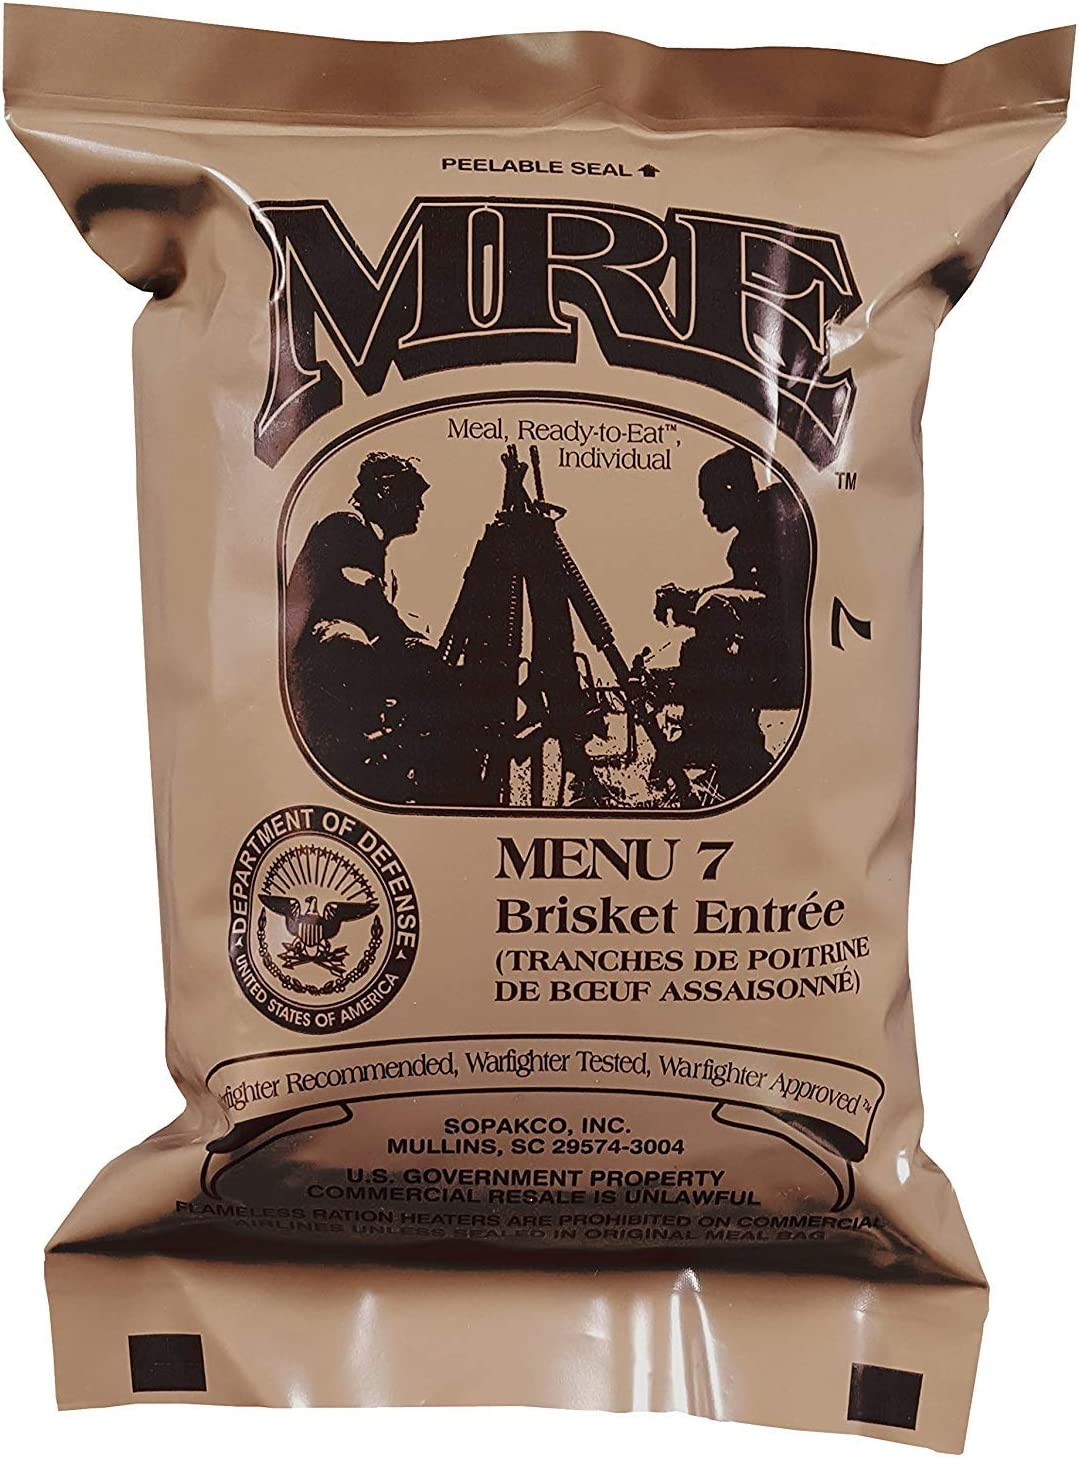 ULTIMATE MRE, Pack Date Printed on Every Meal - Meal-Ready-To-Eat. Inspected by Western Frontier. Genuine Mil Surplus.